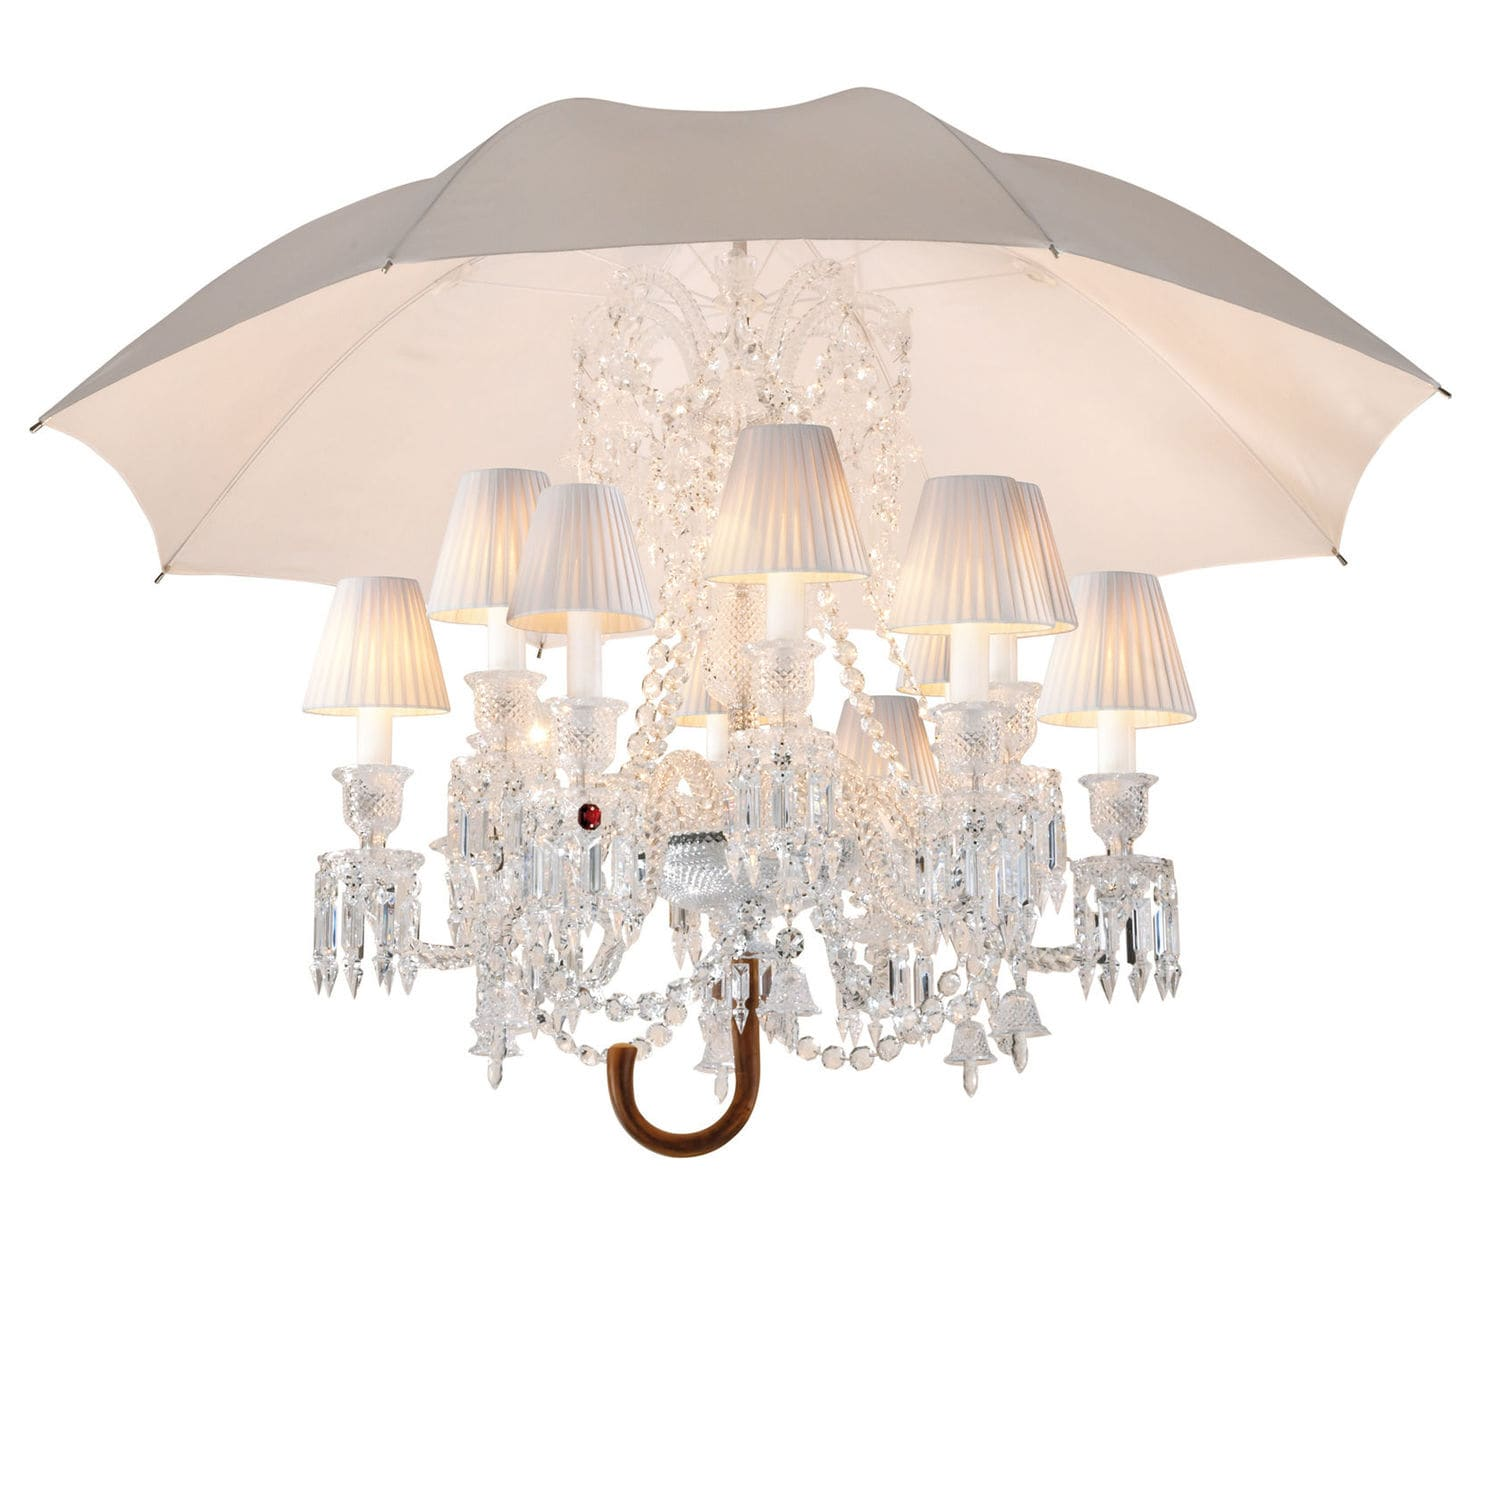 Original Design Chandelier Crystal Incandescent By Philippe Starck Marie Coquine